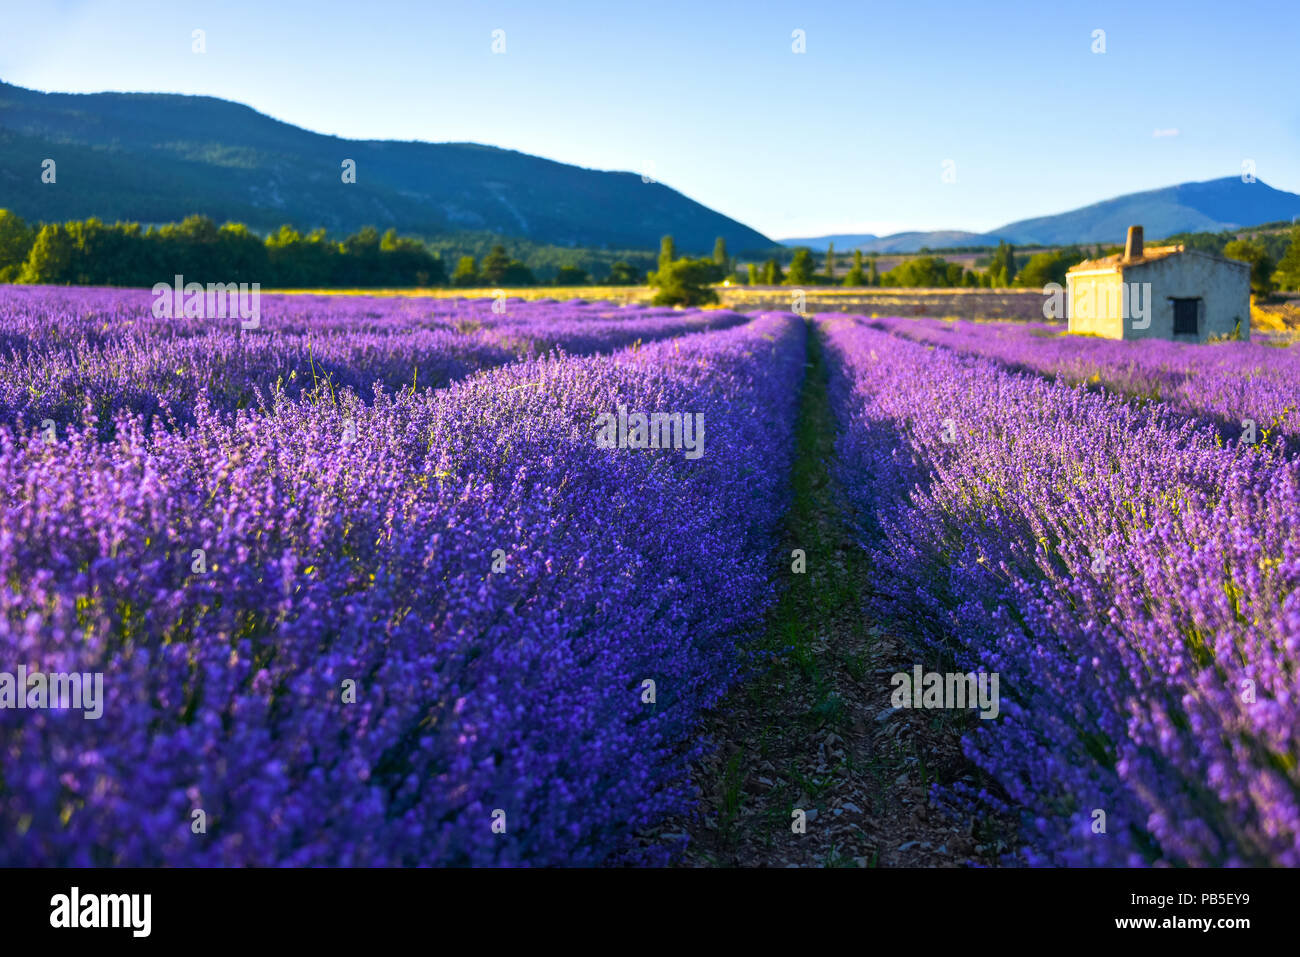 soft lighted lavender field with hut, Provence, France, dreamy close up with fuzziness Stock Photo